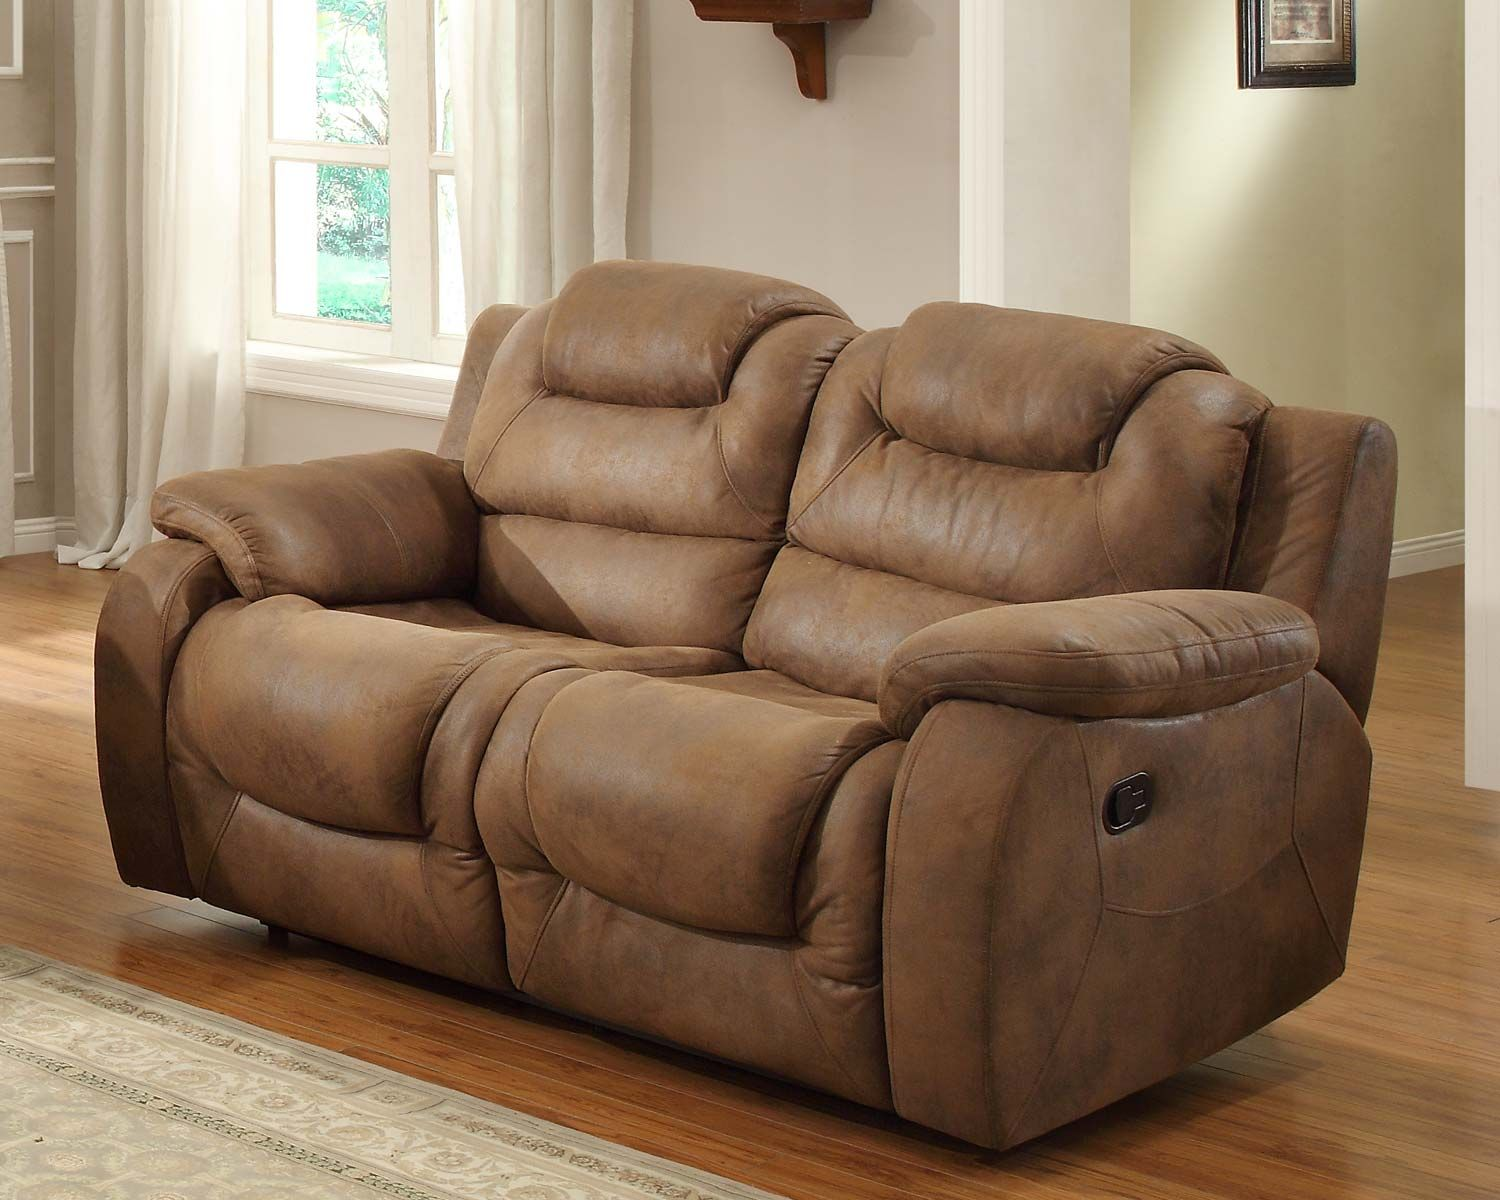 Nice Microfiber Reclining Sofa , Elegant Microfiber Reclining Sofa 41 About  Remodel Office Sofa Ideas With Microfiber Reclining Sofa ...